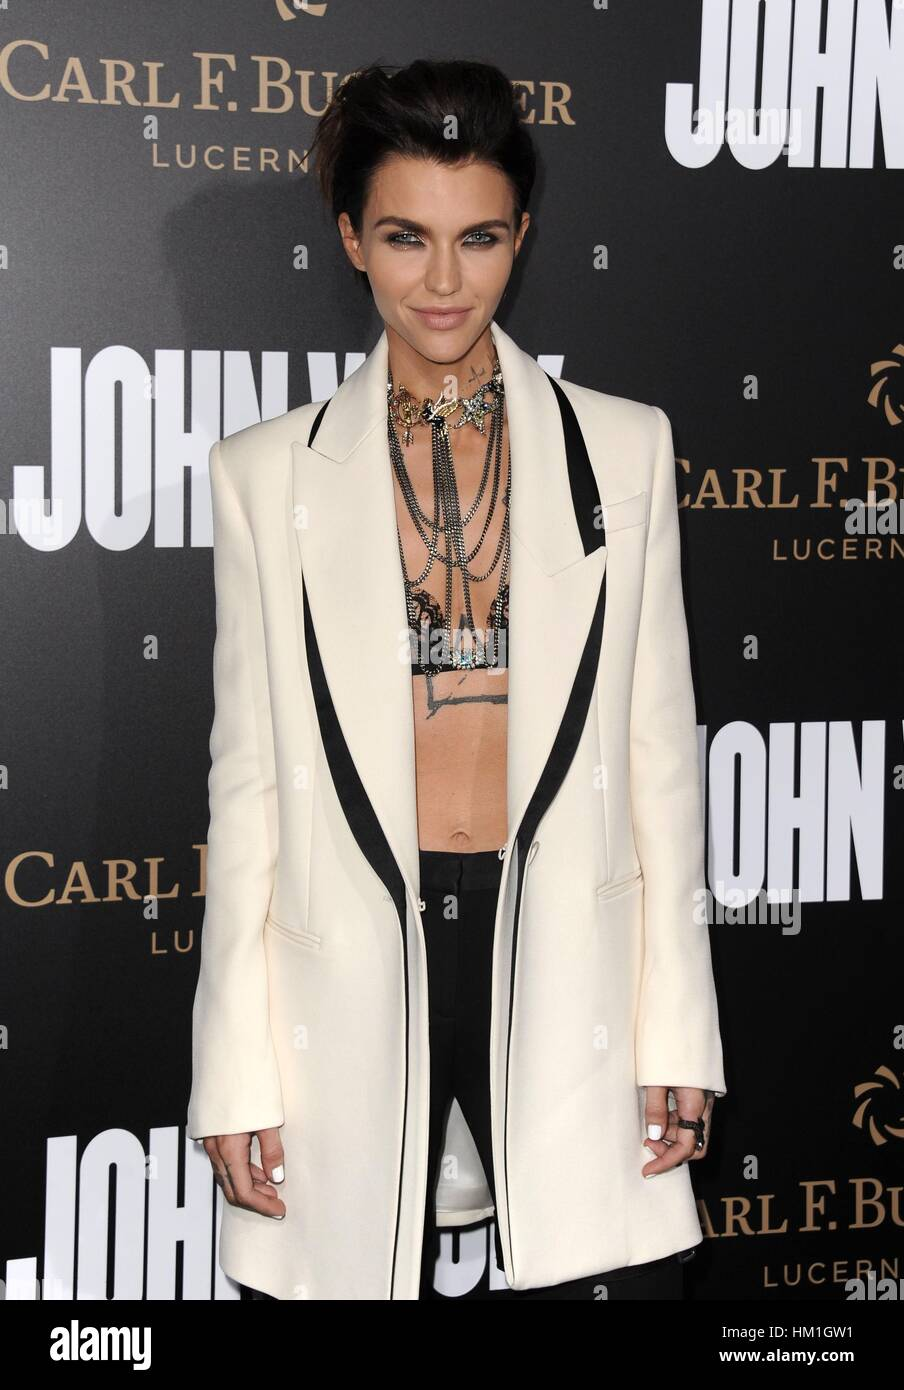 Los Angeles, CA, USA. 30. Januar 2017. Ruby Rose im Ankunftsbereich für JOHN WICK: CHAPTER TWO Premiere, Arclight Stockfoto